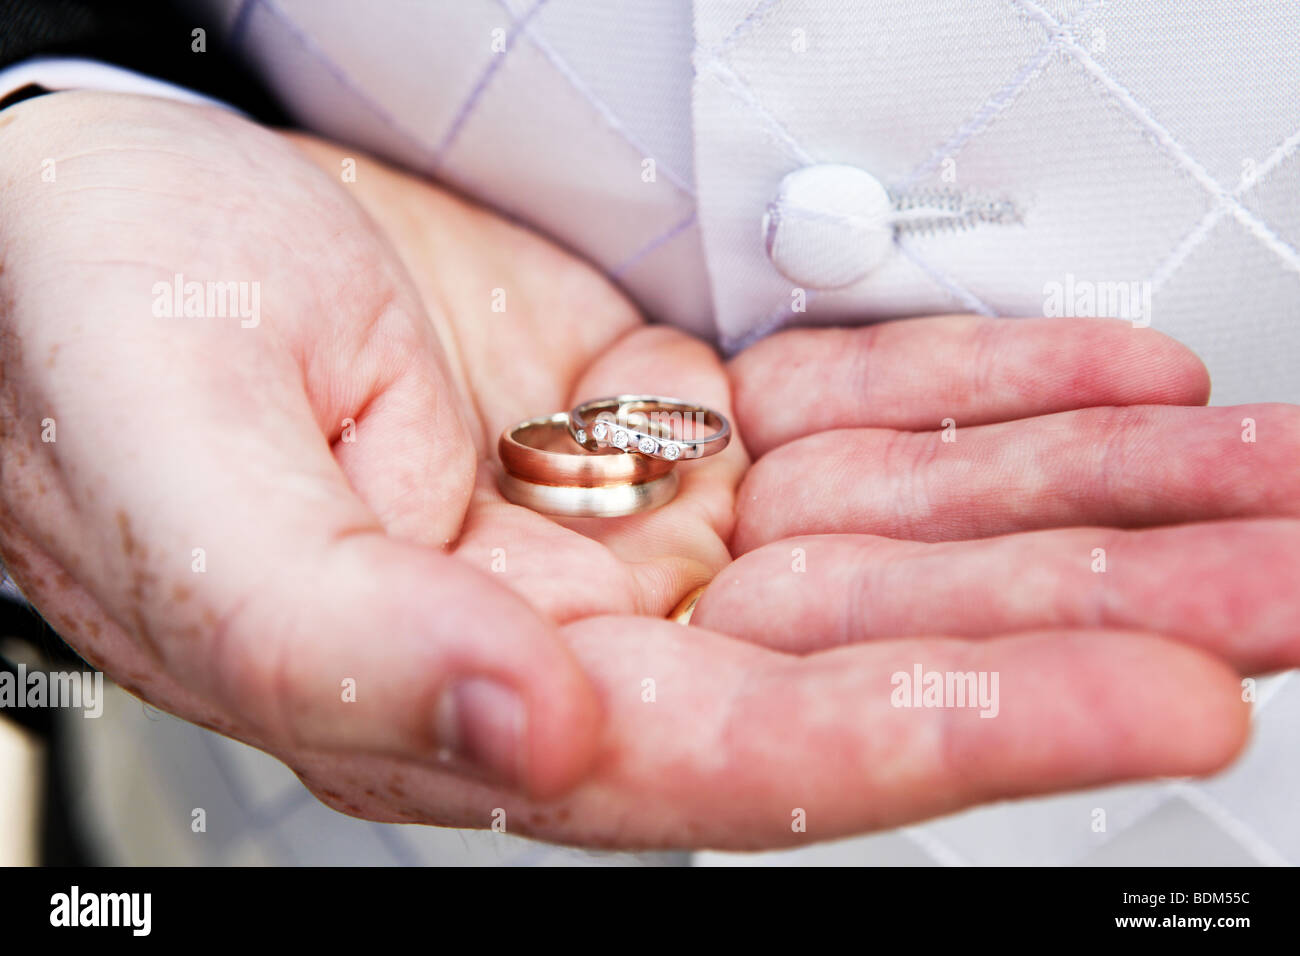 Close up of groom holding new wedding bands rings in palm of hand on ...